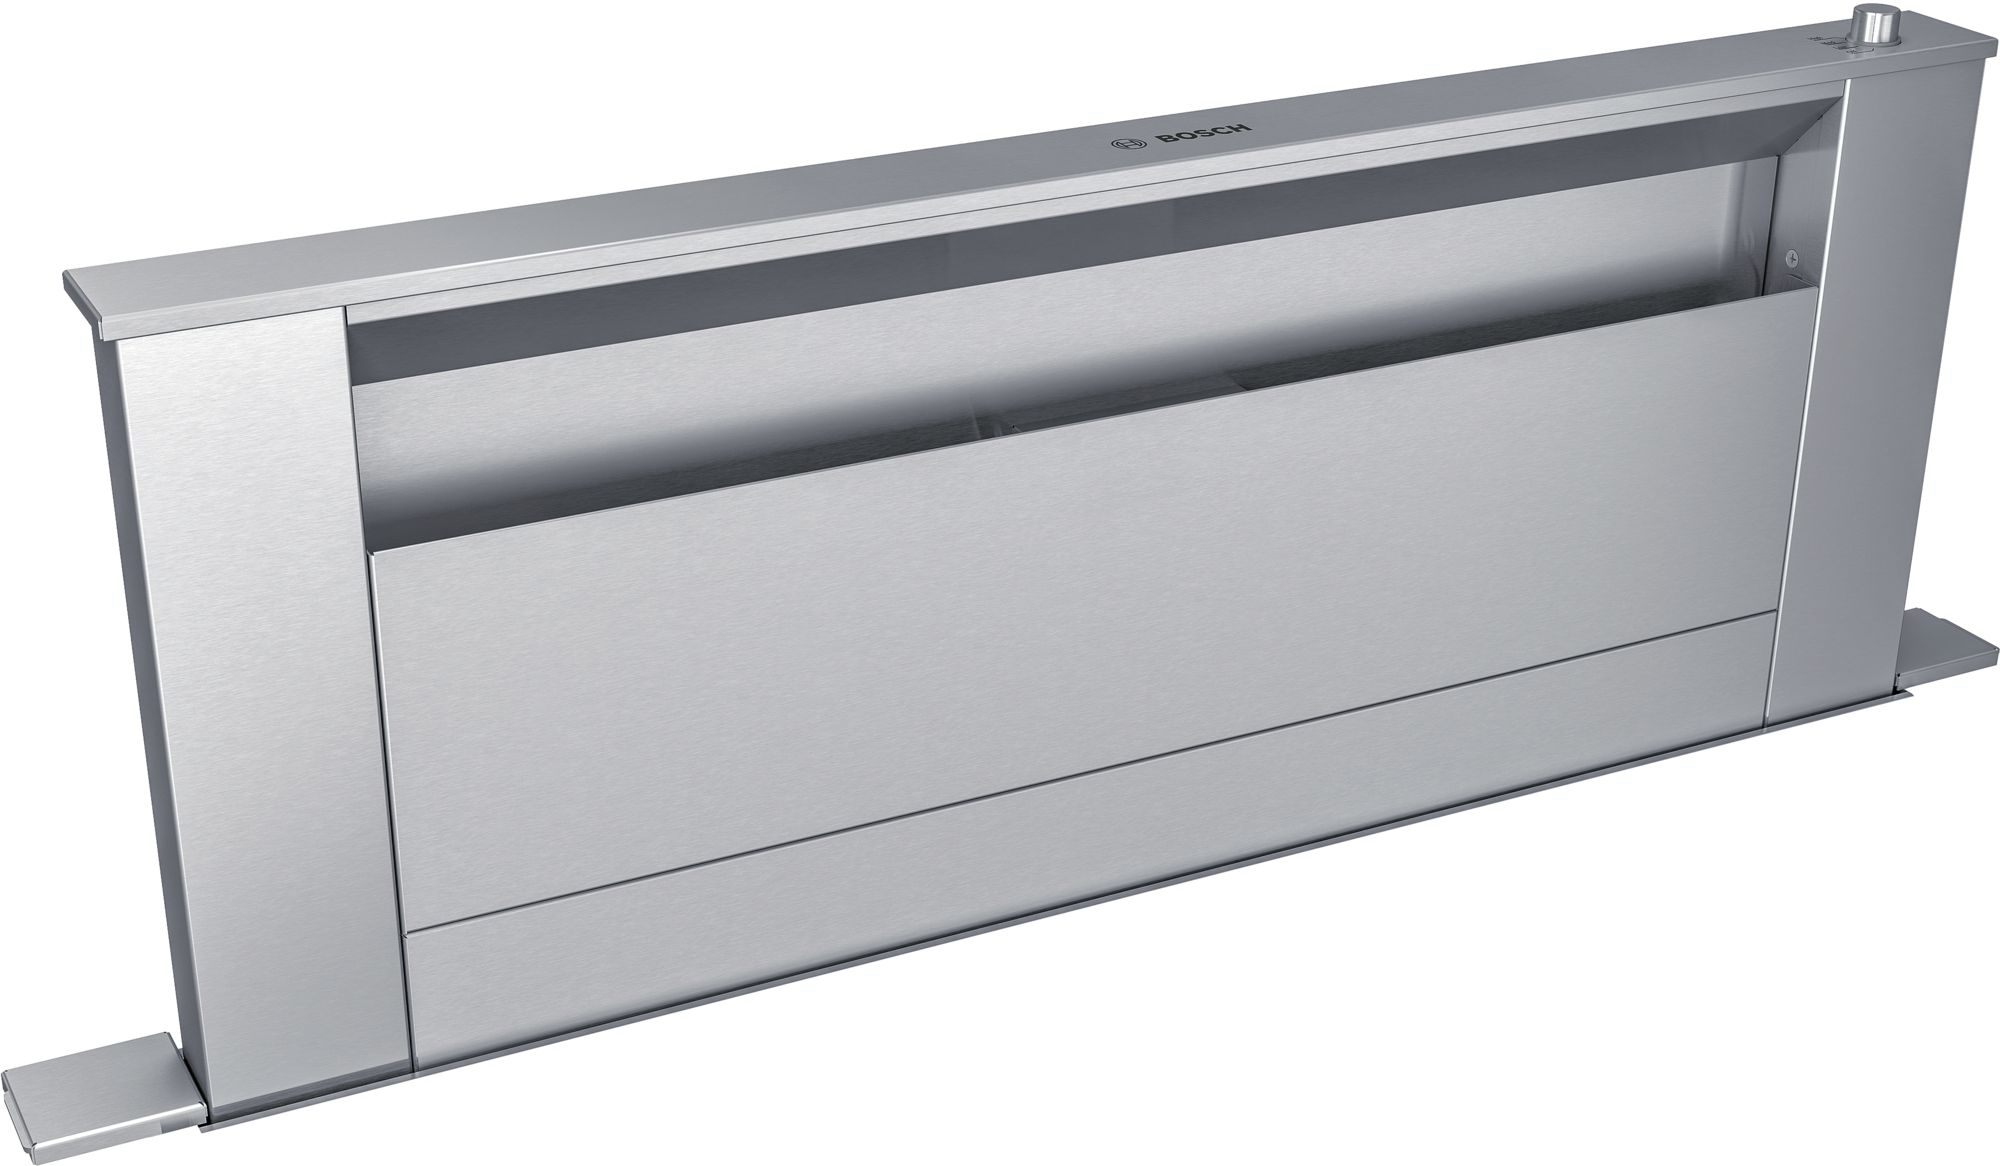 BOSCH | DOWNDRAFT HOODS | 800 SERIES | STAINLESS 37%22.jpg